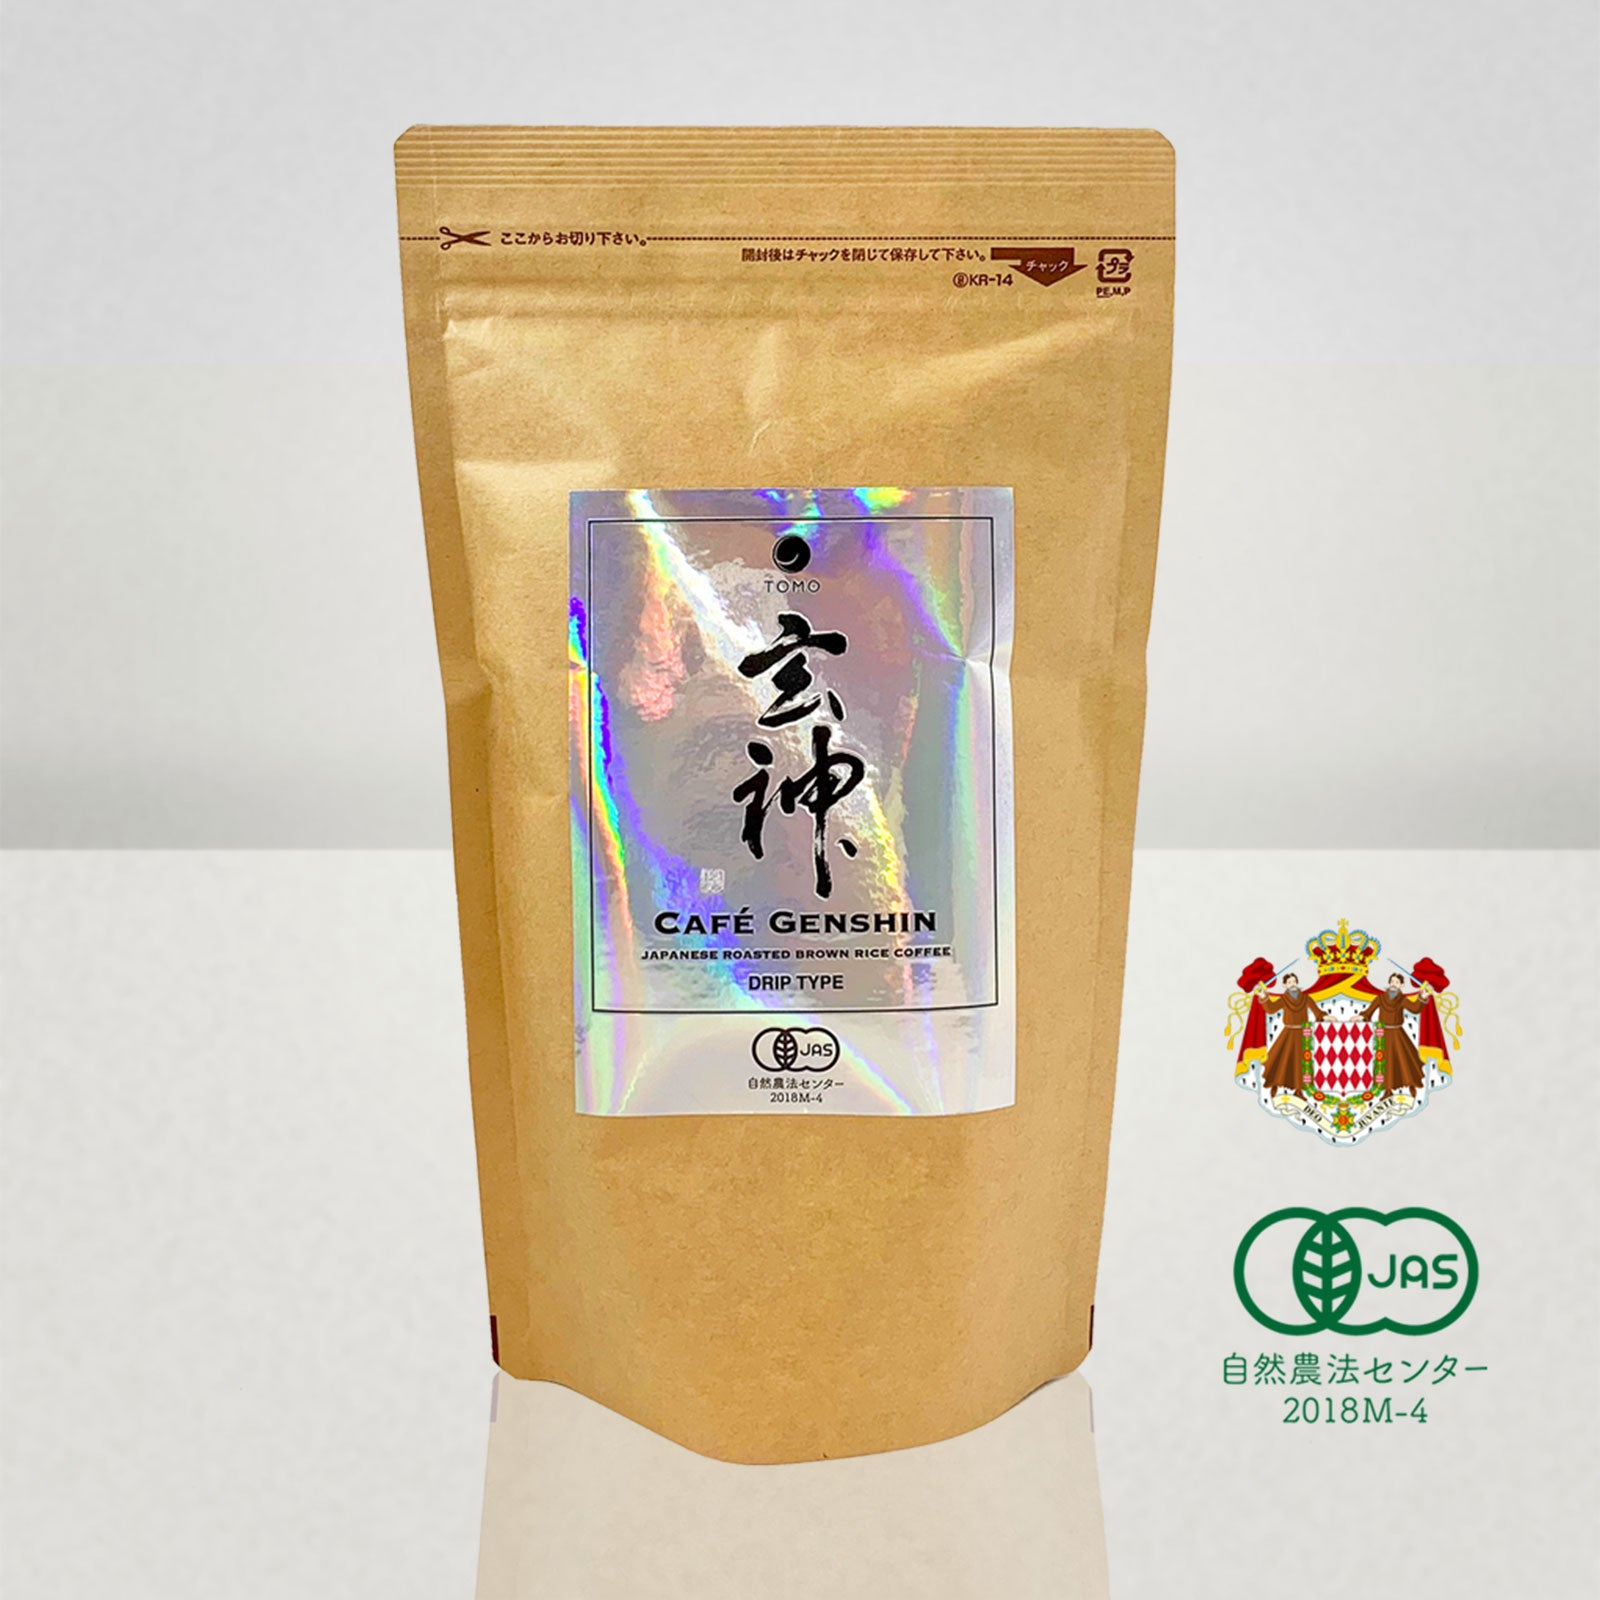 Café Genshin - drip type 300g (Organic Japanese brown rice coffee)